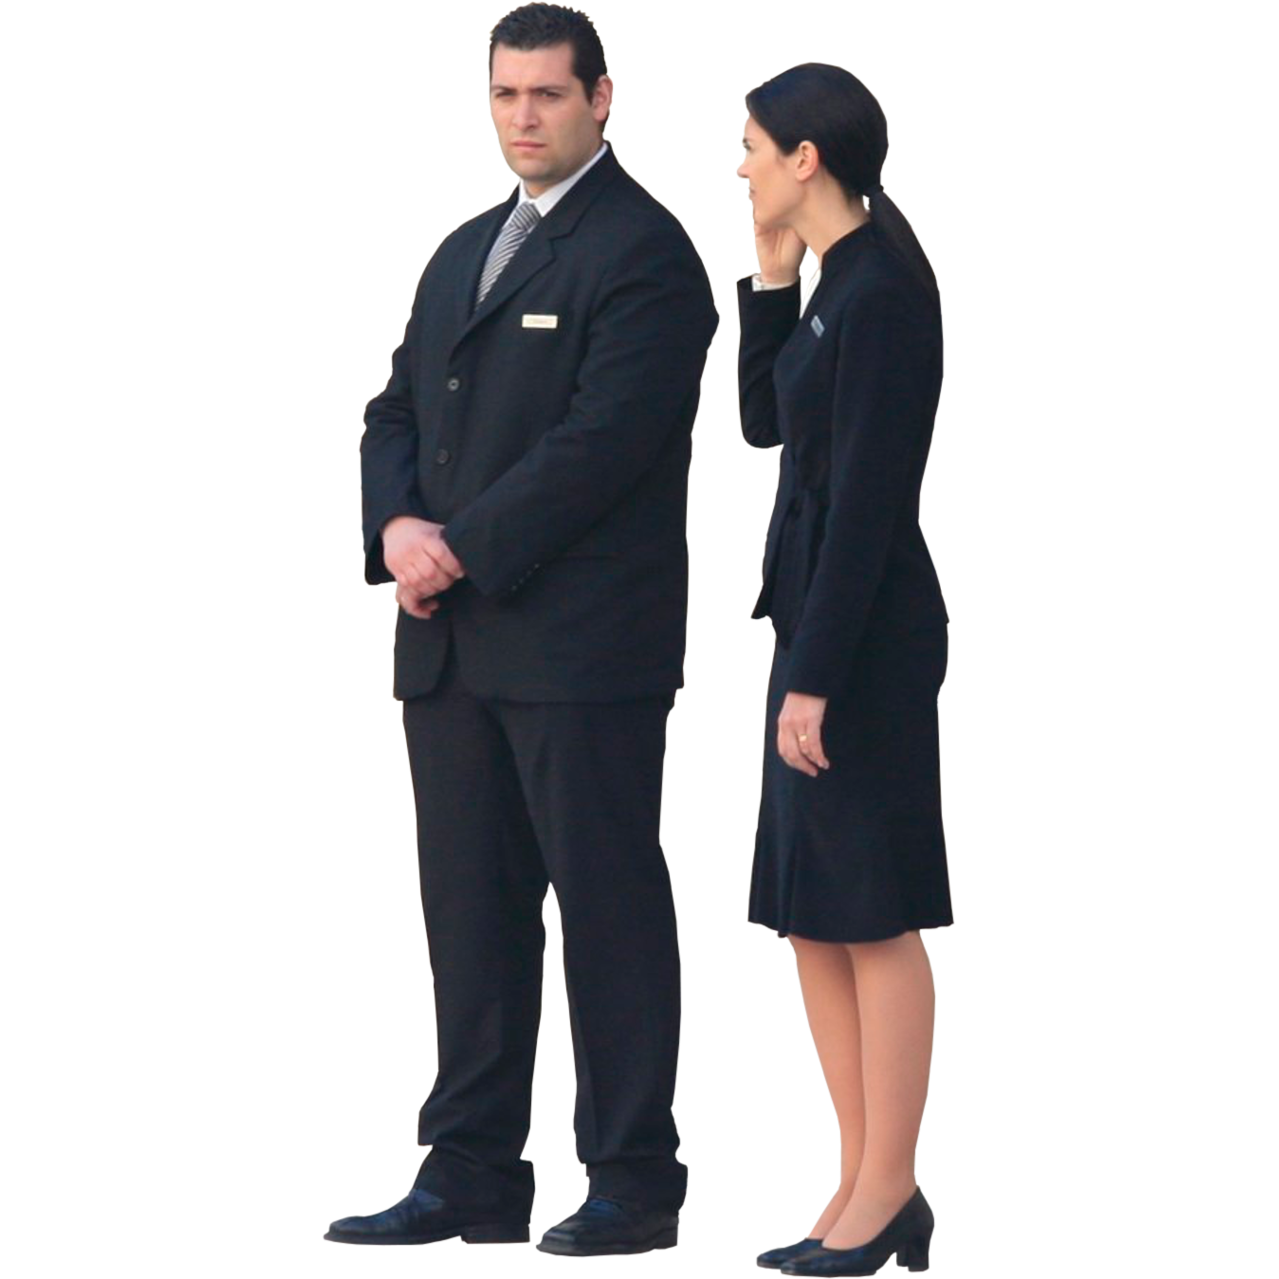 Business people walking png. Playing cards transparent images